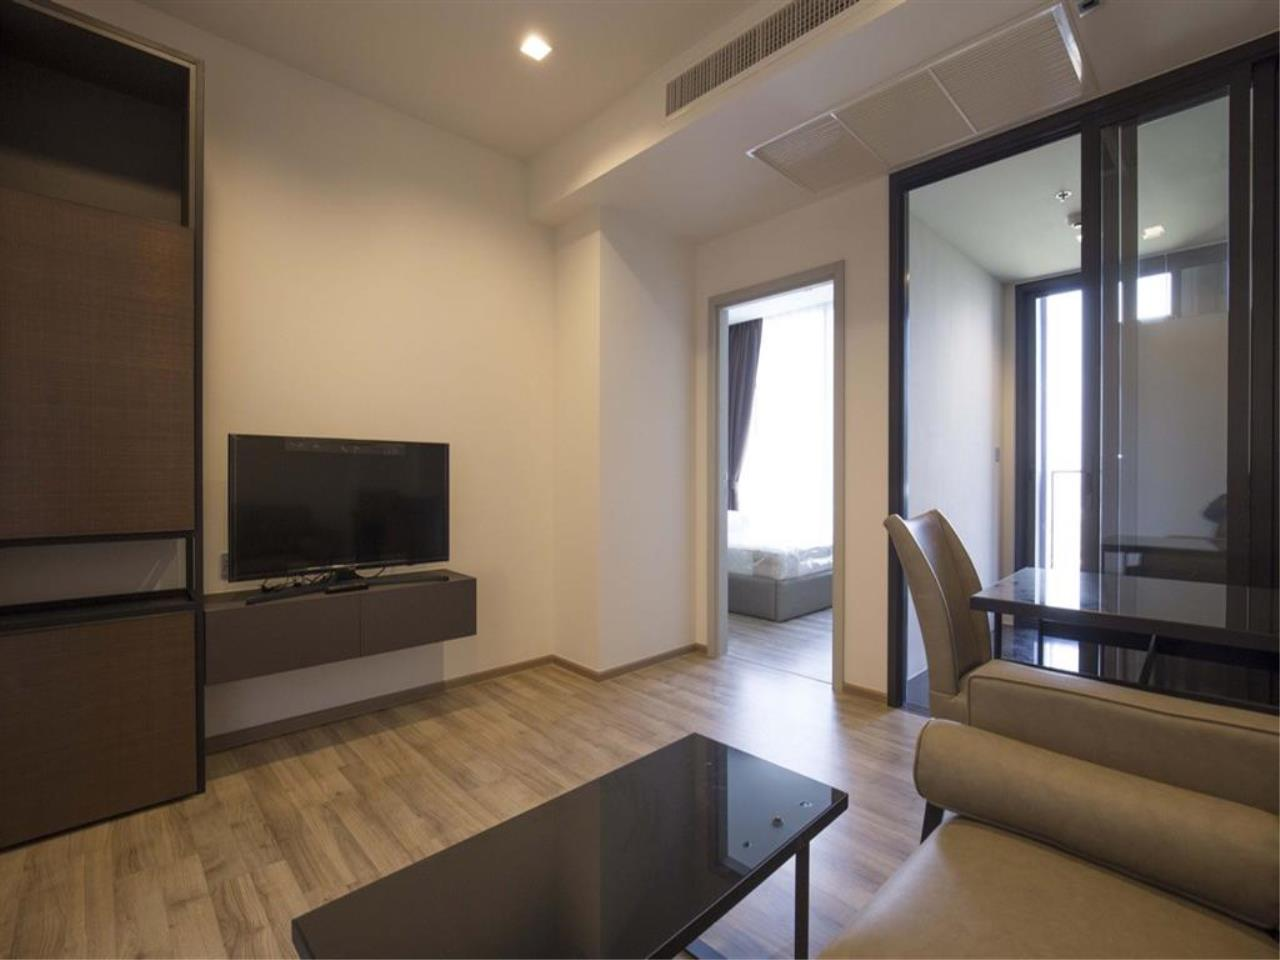 Plus Property Agency's Rent : CD177316 THE LINE JATUJAK-MOCHIT Condominium Paholyothin Bangkok 10